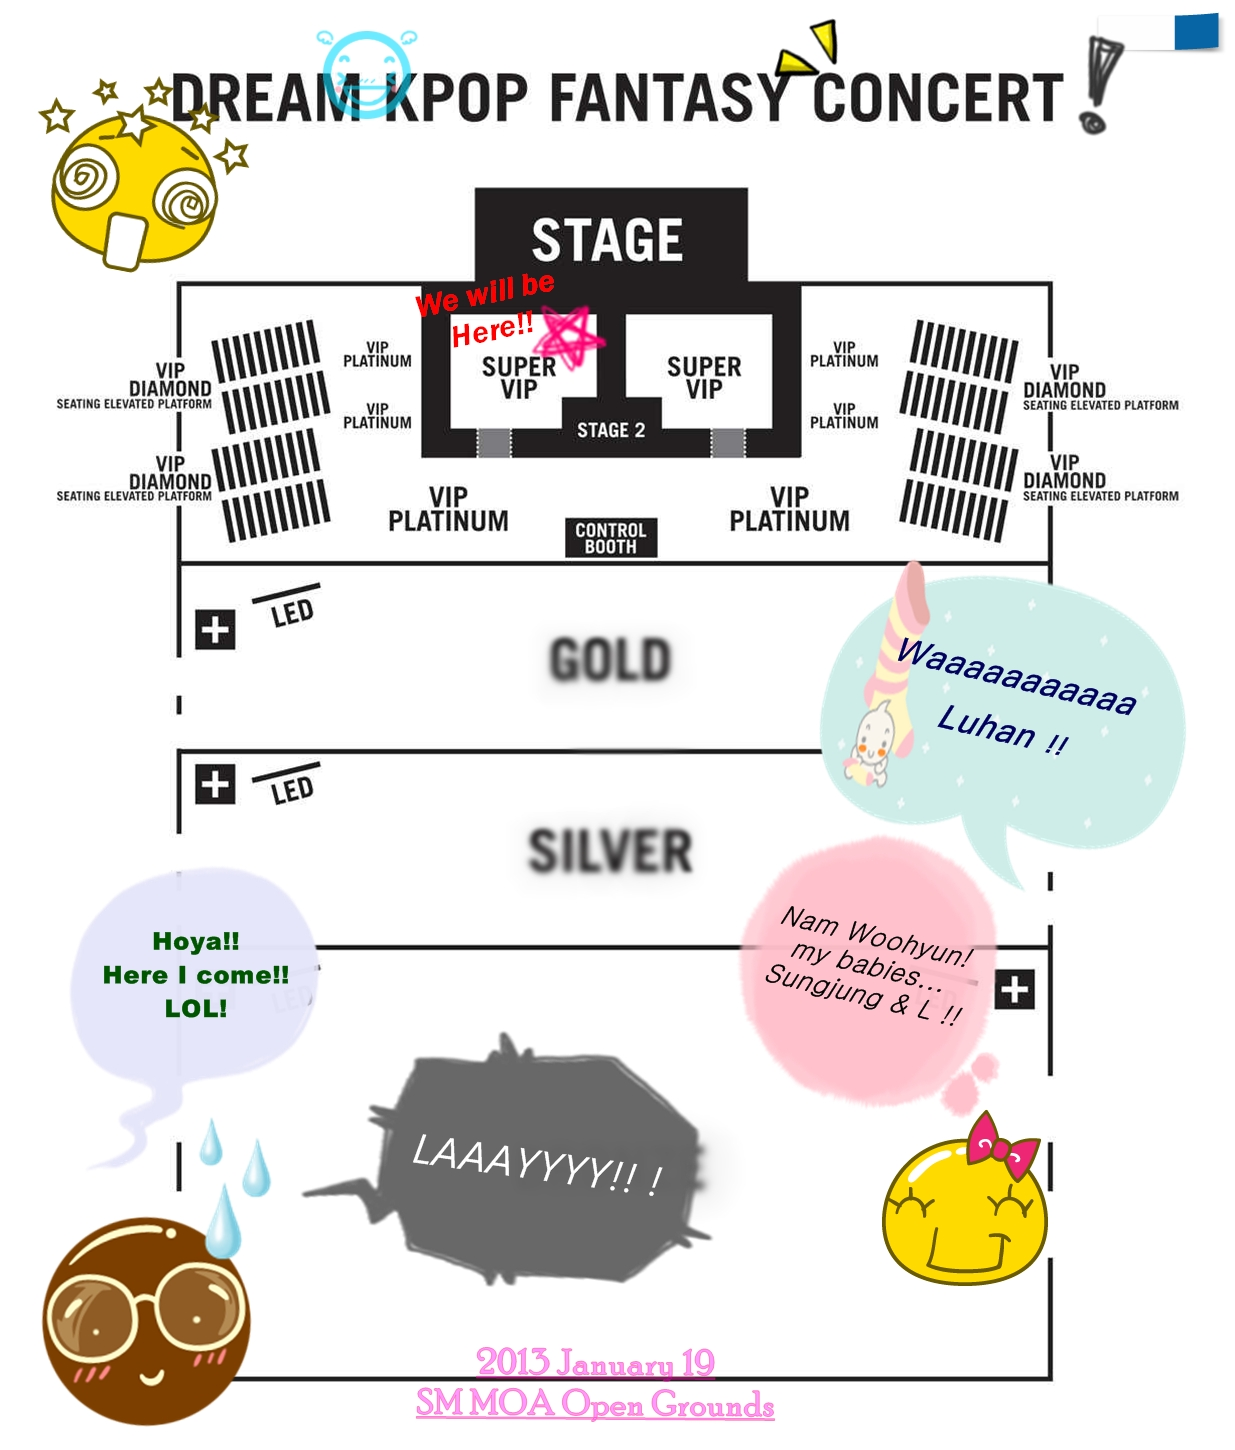 We are going to DKFC!!: Dream Kpop Fantasy Concert Stage Layout